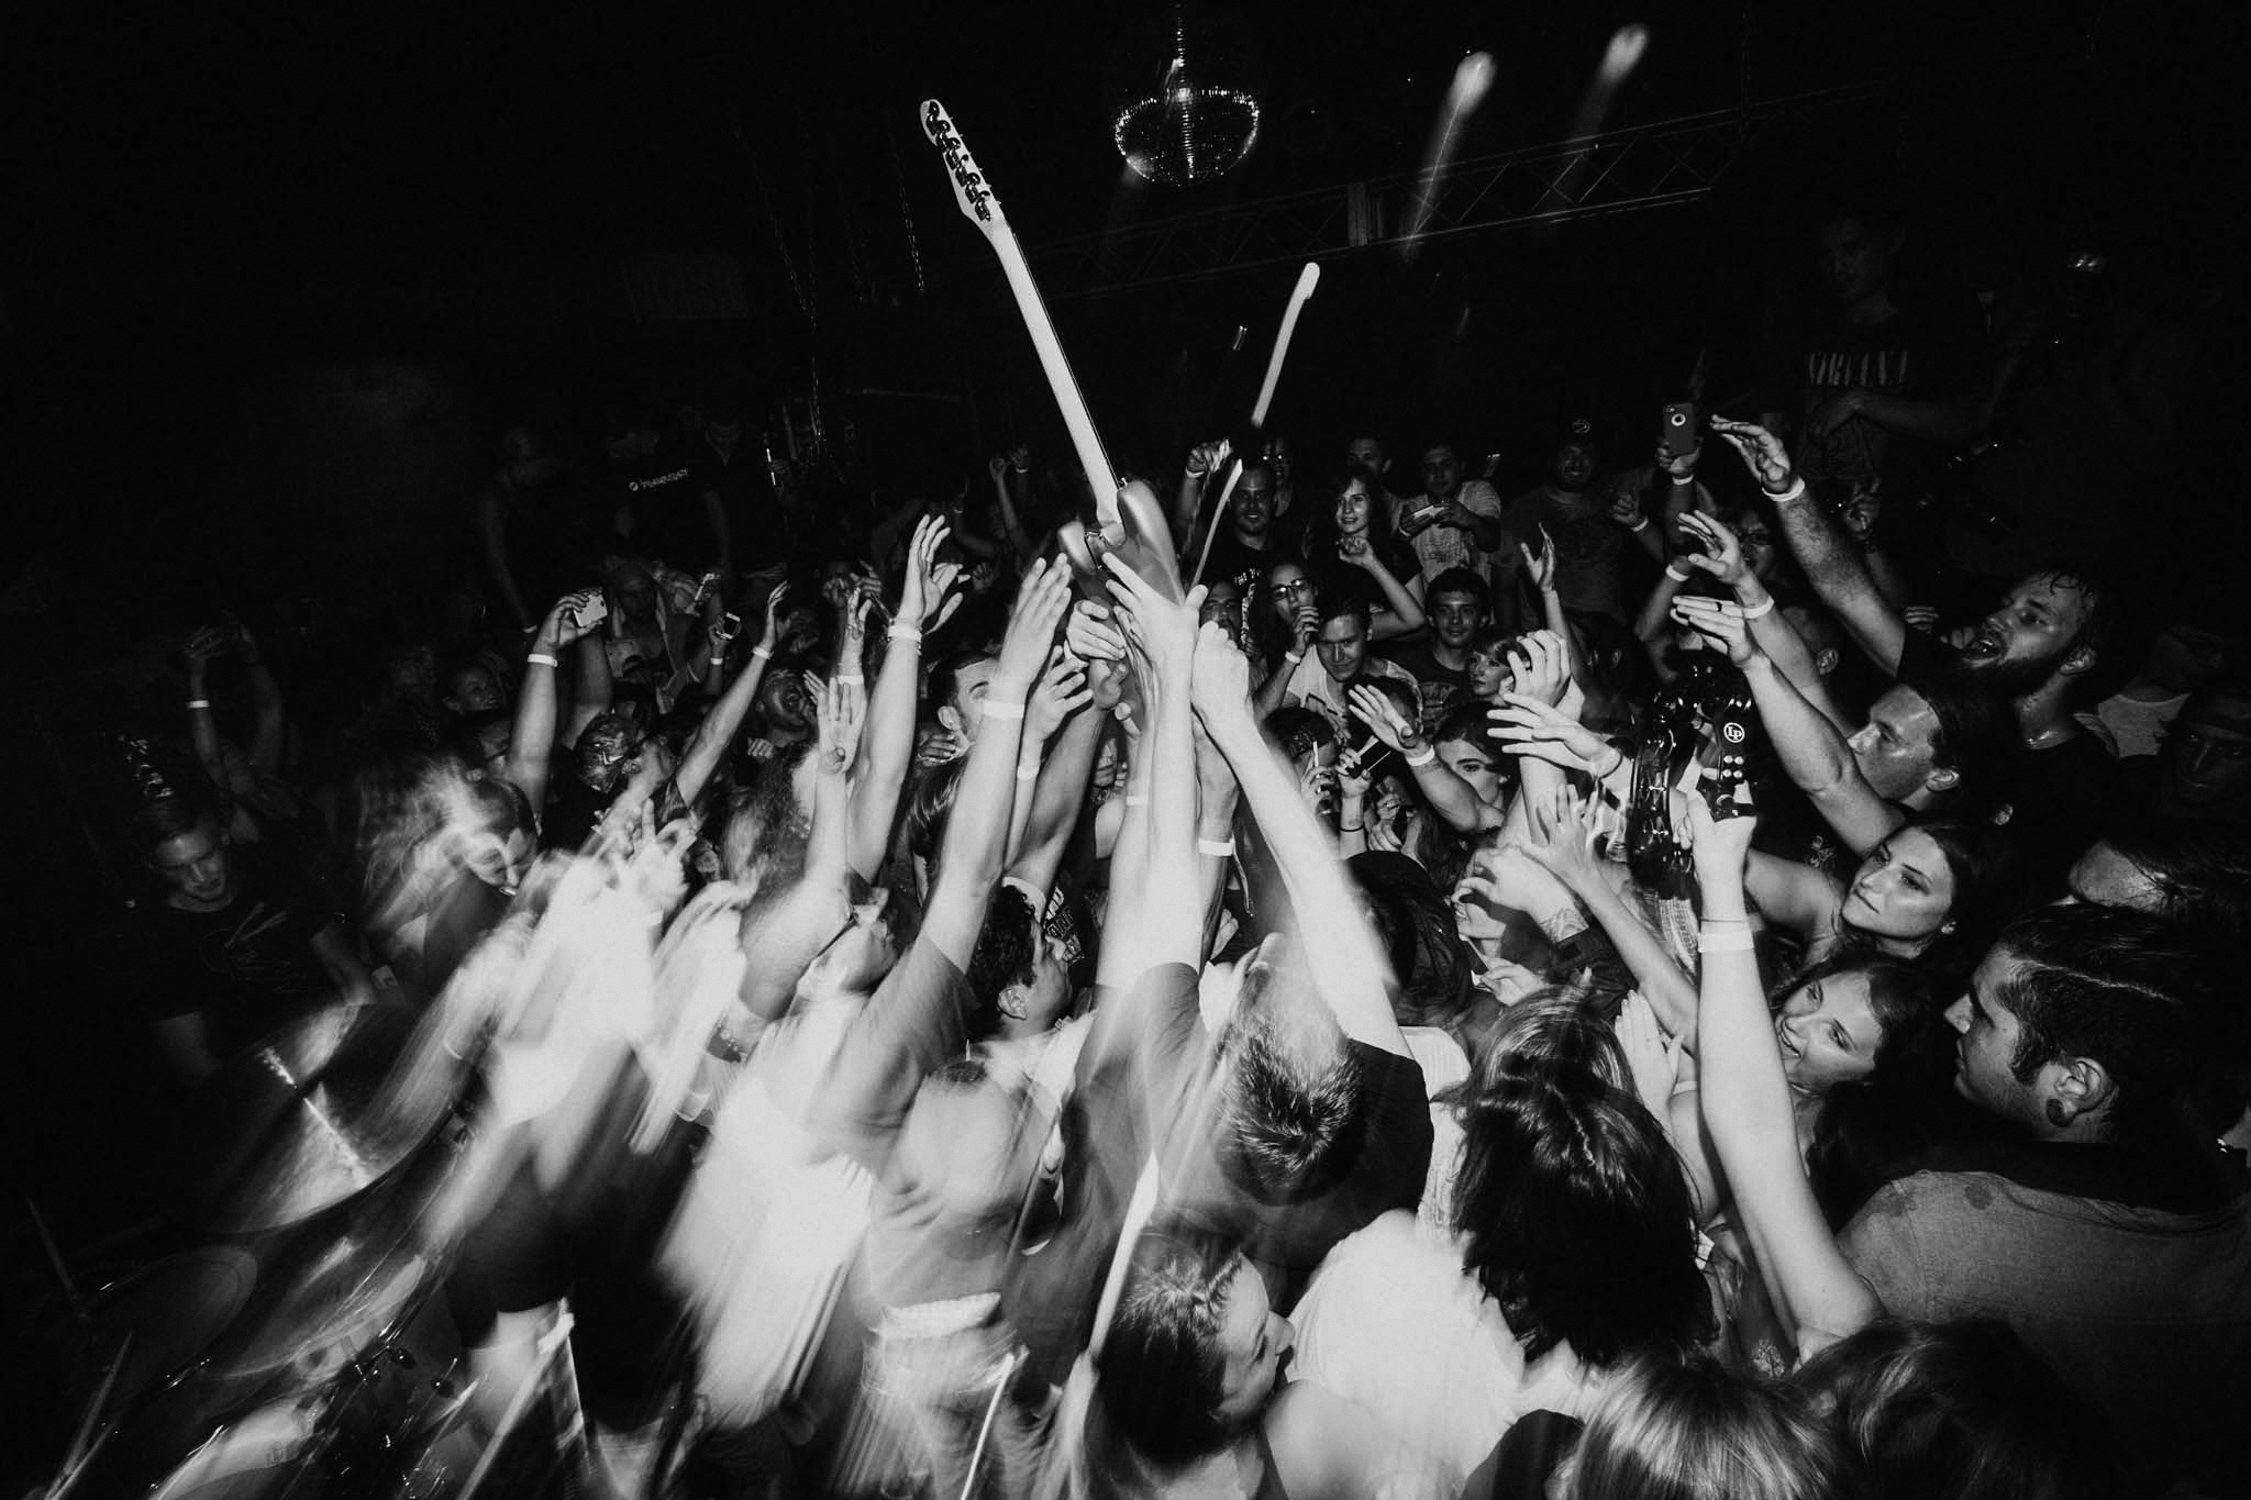 punk-rock-crowd-with-guitar-shutter-drag-AnnaLeeMedia